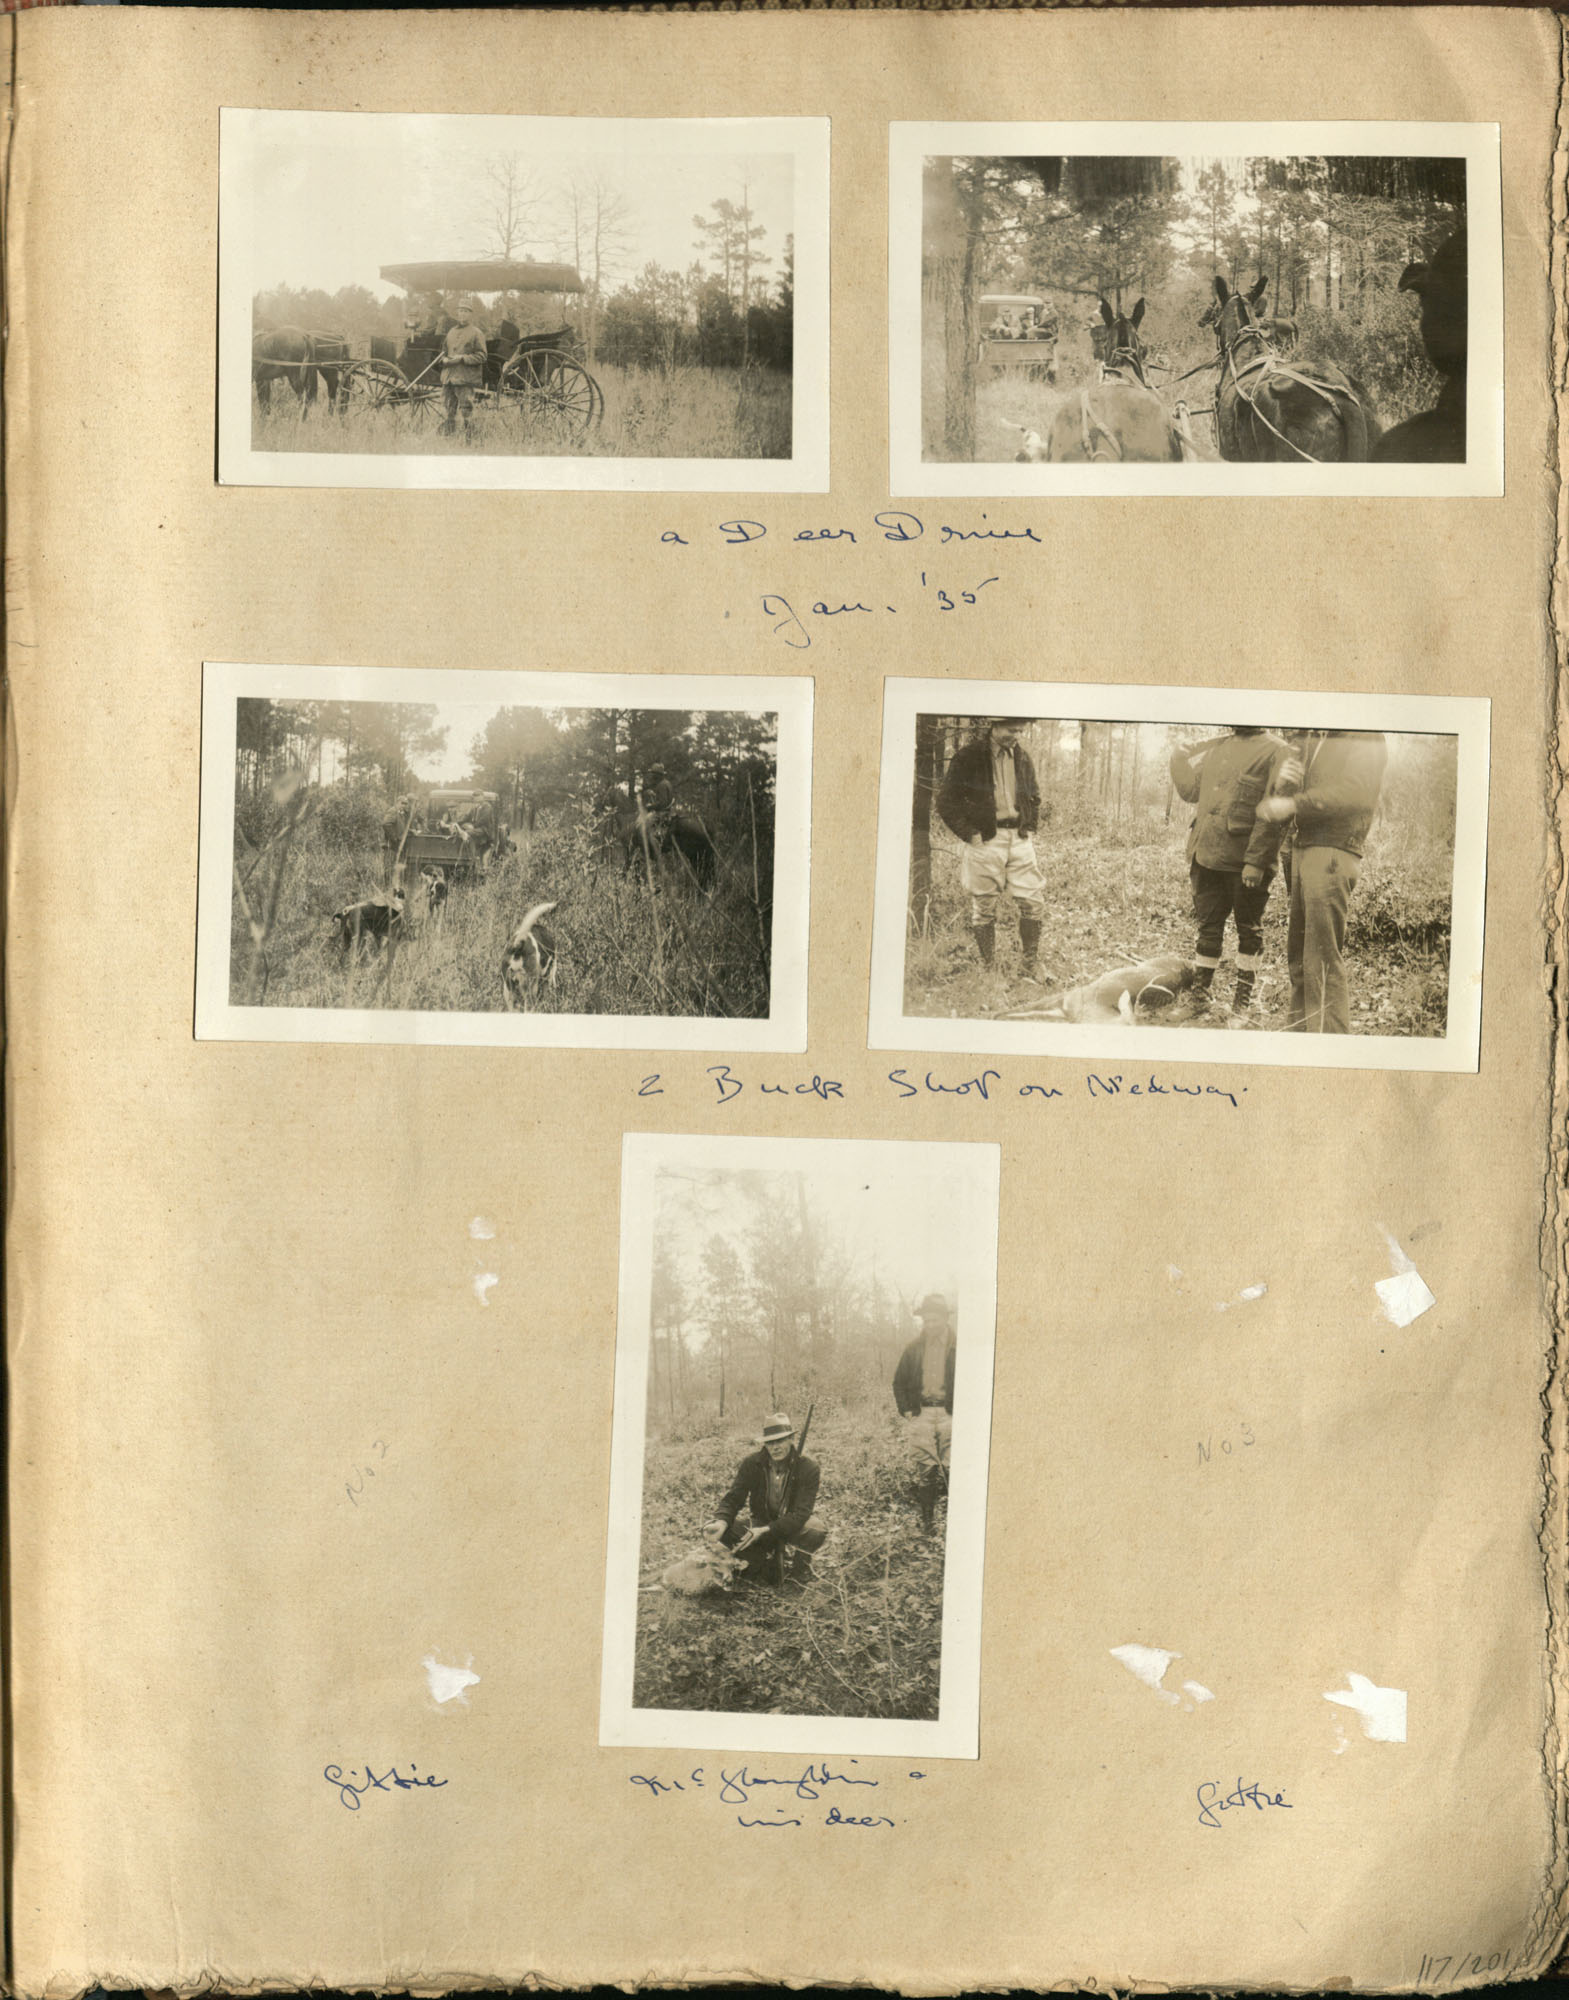 Early Medway and travels album, 1929-1937, page 117